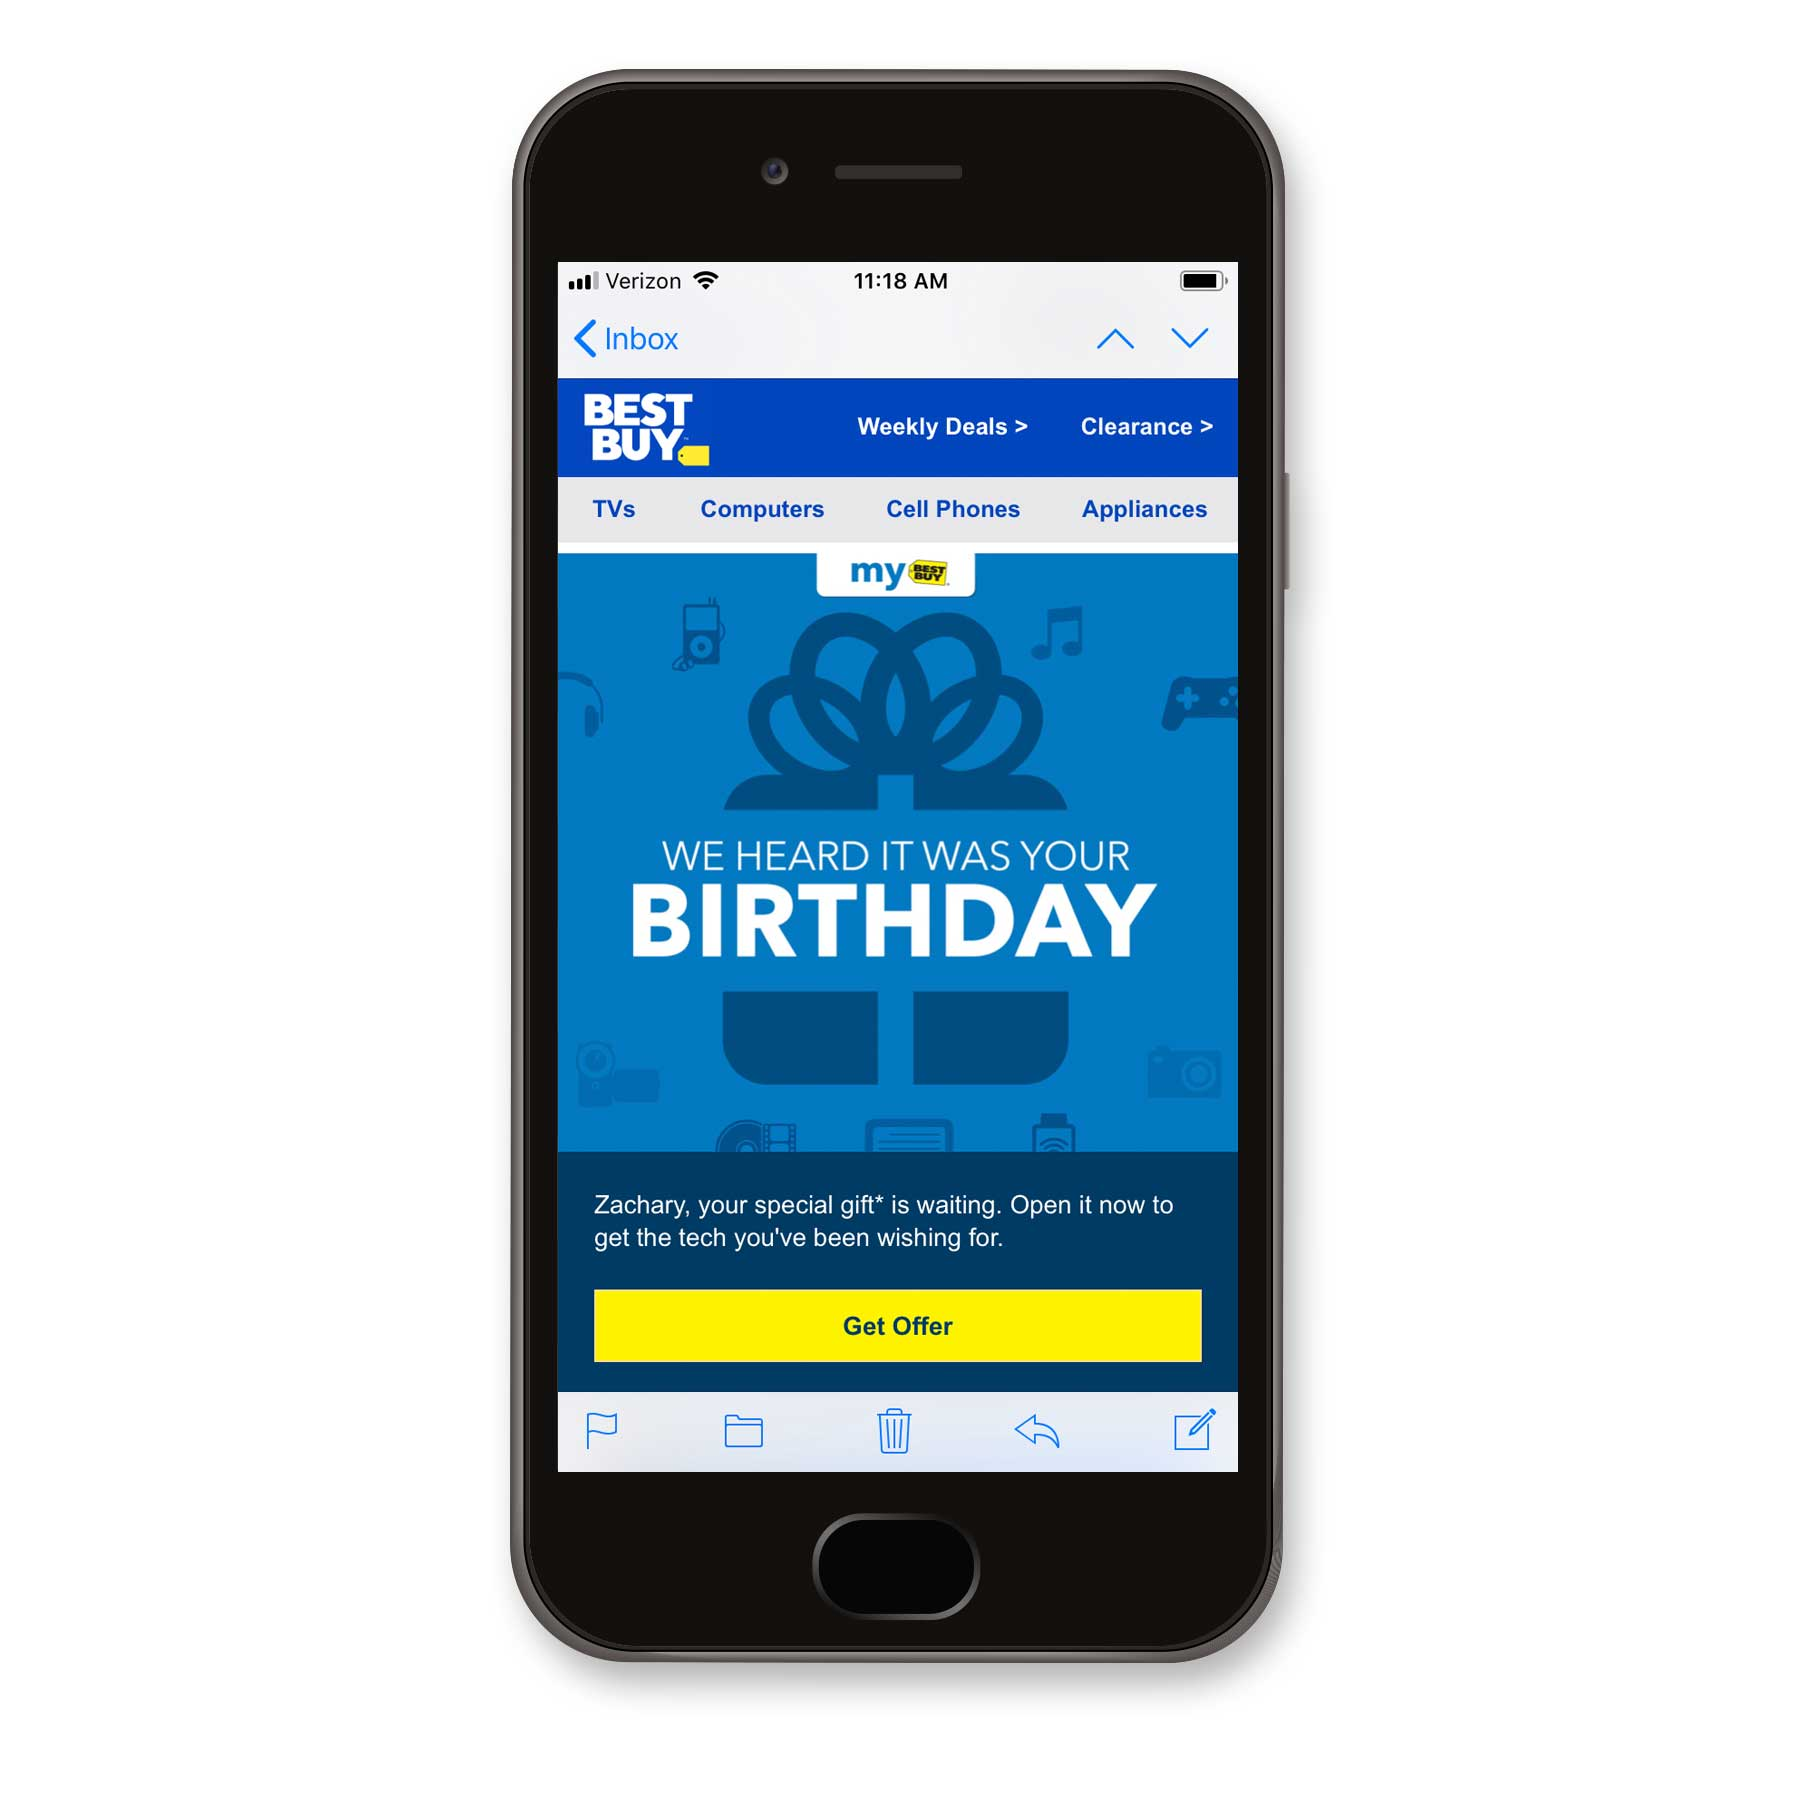 Birthday Email from Best Buy